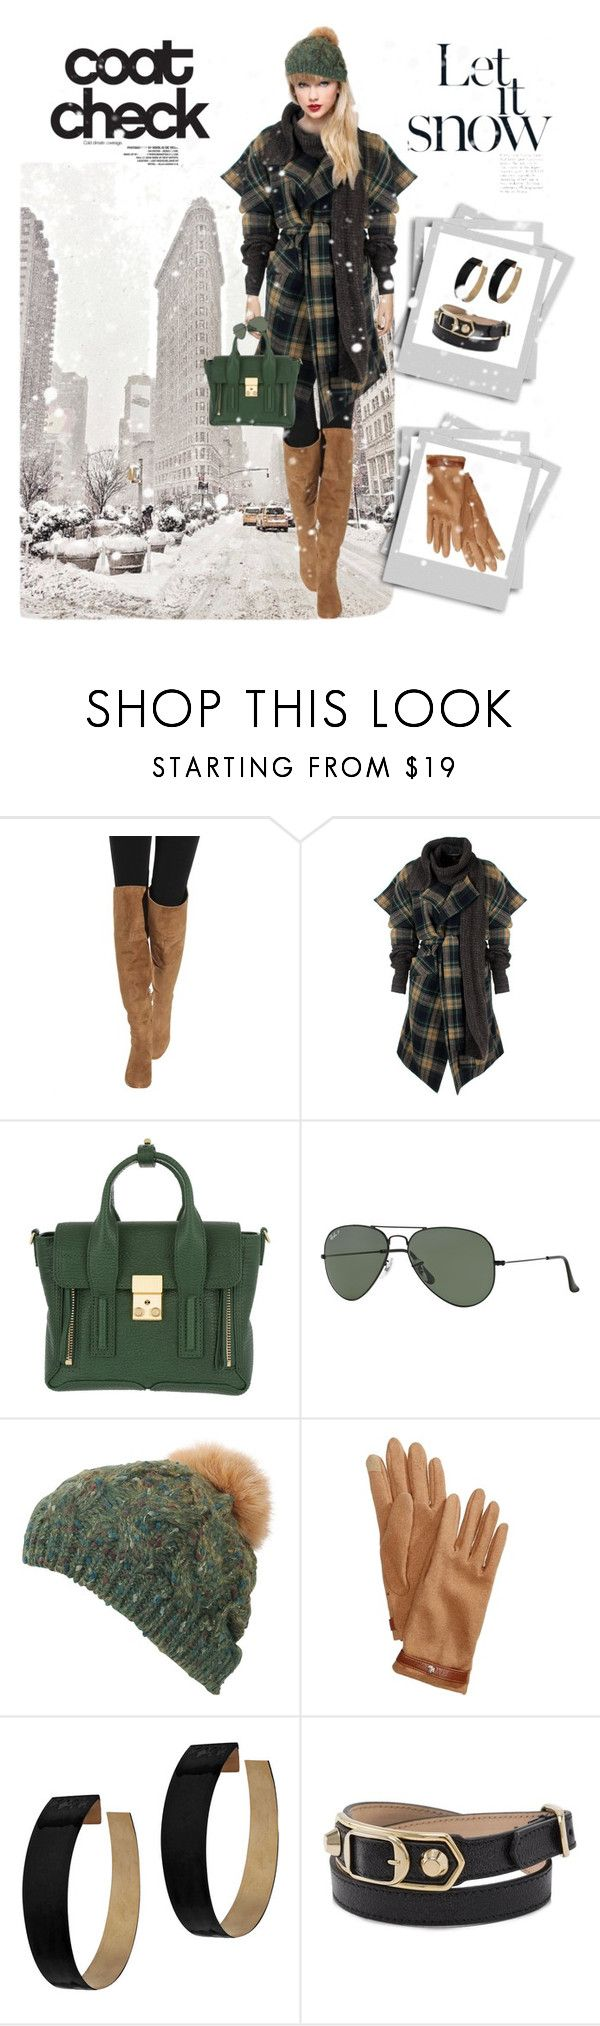 """""""Senza titolo #1295"""" by manueladimauro ❤ liked on Polyvore featuring Polo Ralph Lauren, Vivienne Westwood Anglomania, 3.1 Phillip Lim, Ray-Ban, Lauren Ralph Lauren, Zimmermann, Balenciaga and statementcoats"""